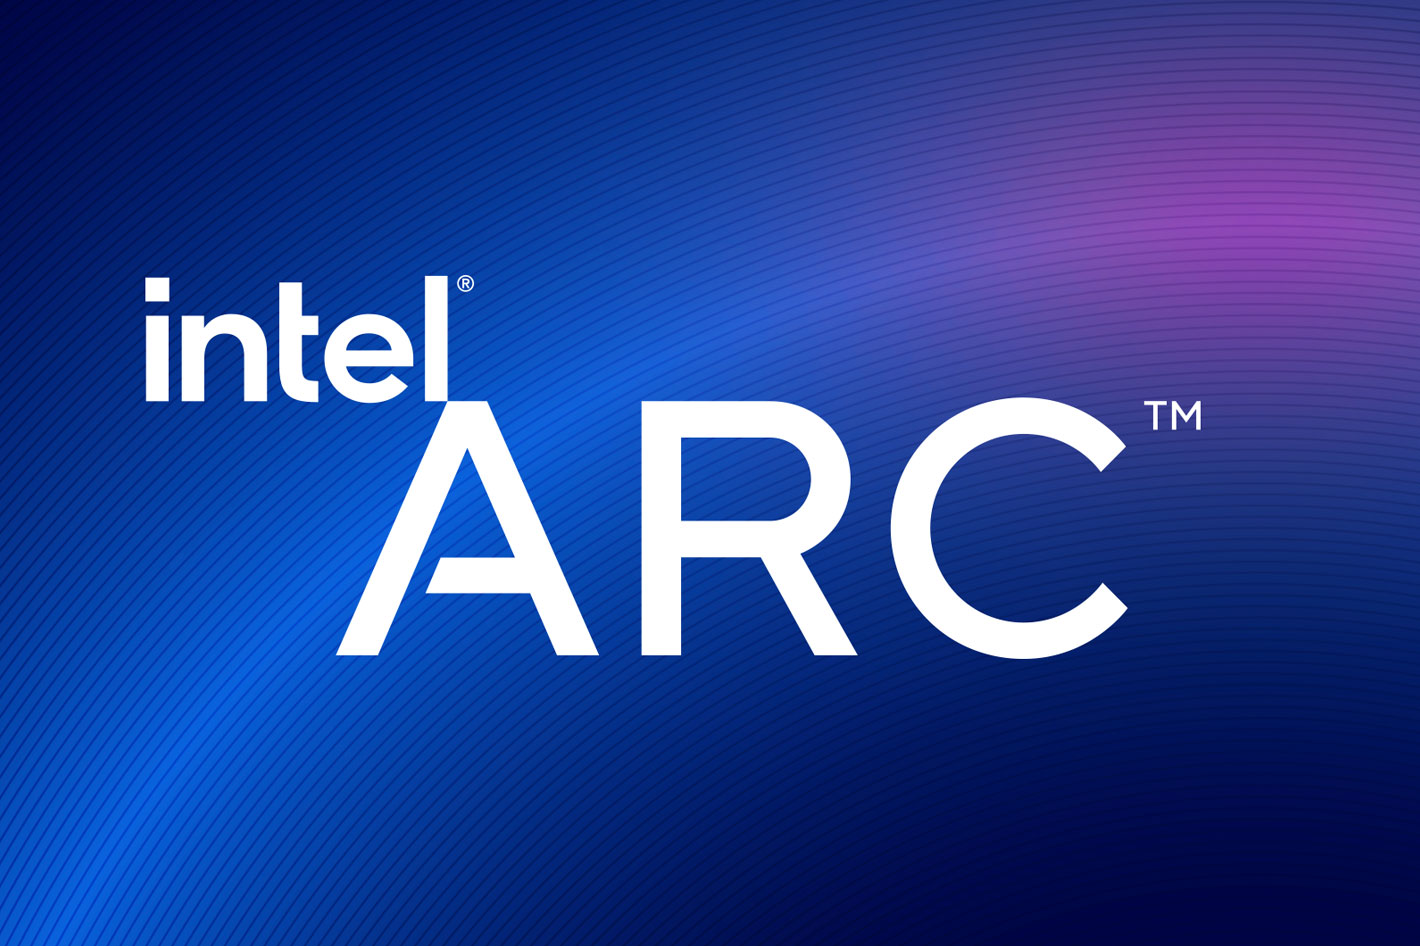 Intel Arc: new graphics cards to rival AMD and NVIDIA